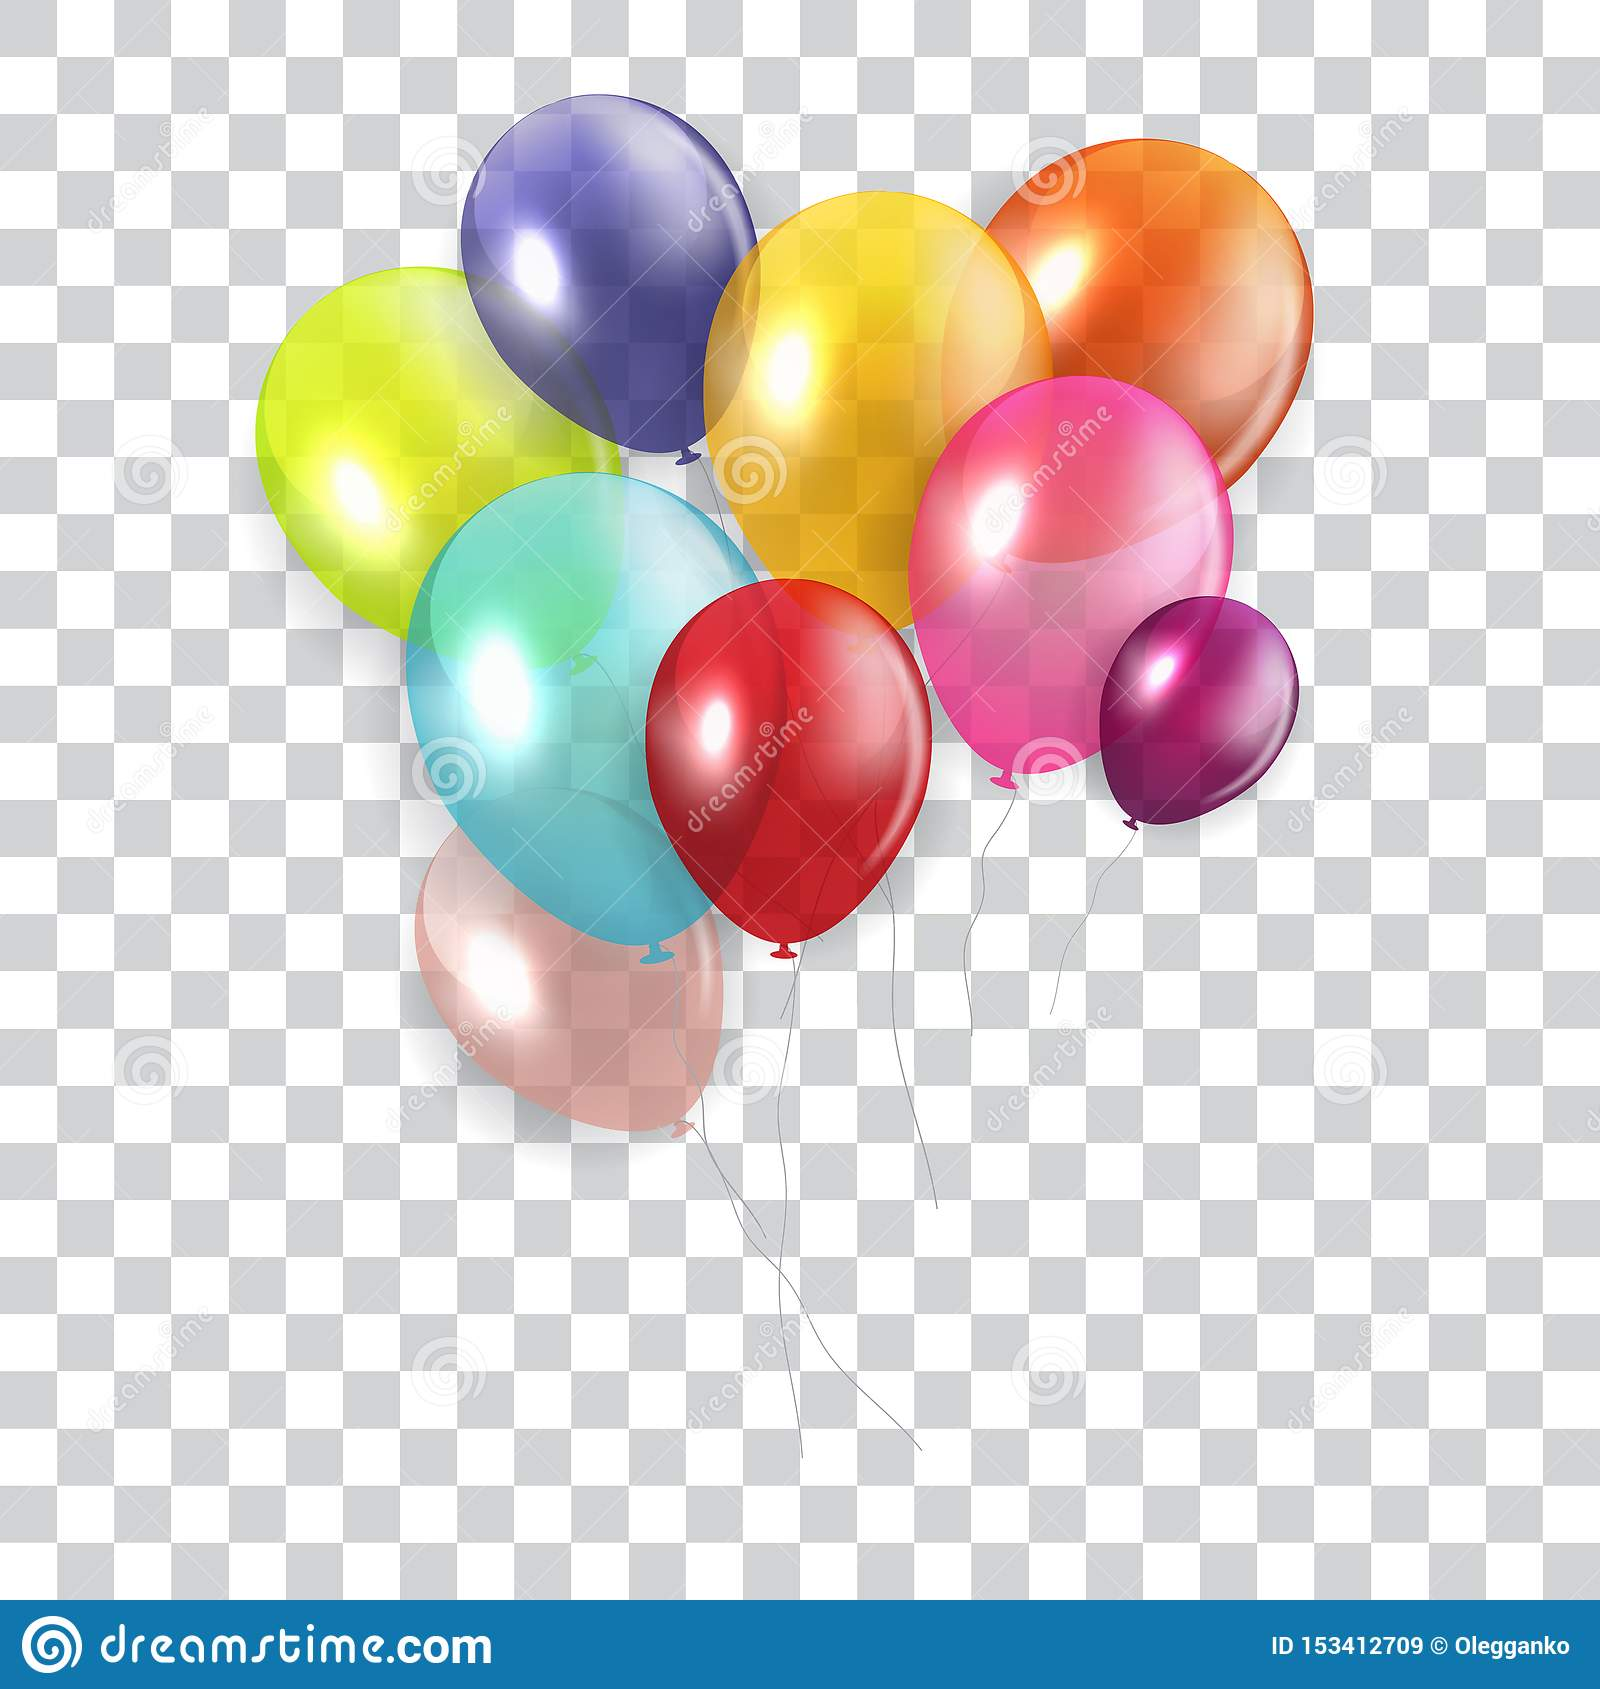 Glossy Happy Birthday Concept With Balloons Isolated On Transparent Background Vector Illustration Stock Vector Illustration Of Color Festival 153412709 Find the perfect balloons happy birthday stock vector image. https www dreamstime com glossy happy birthday concept balloons isolated transparent background vector illustration glossy happy birthday concept image153412709